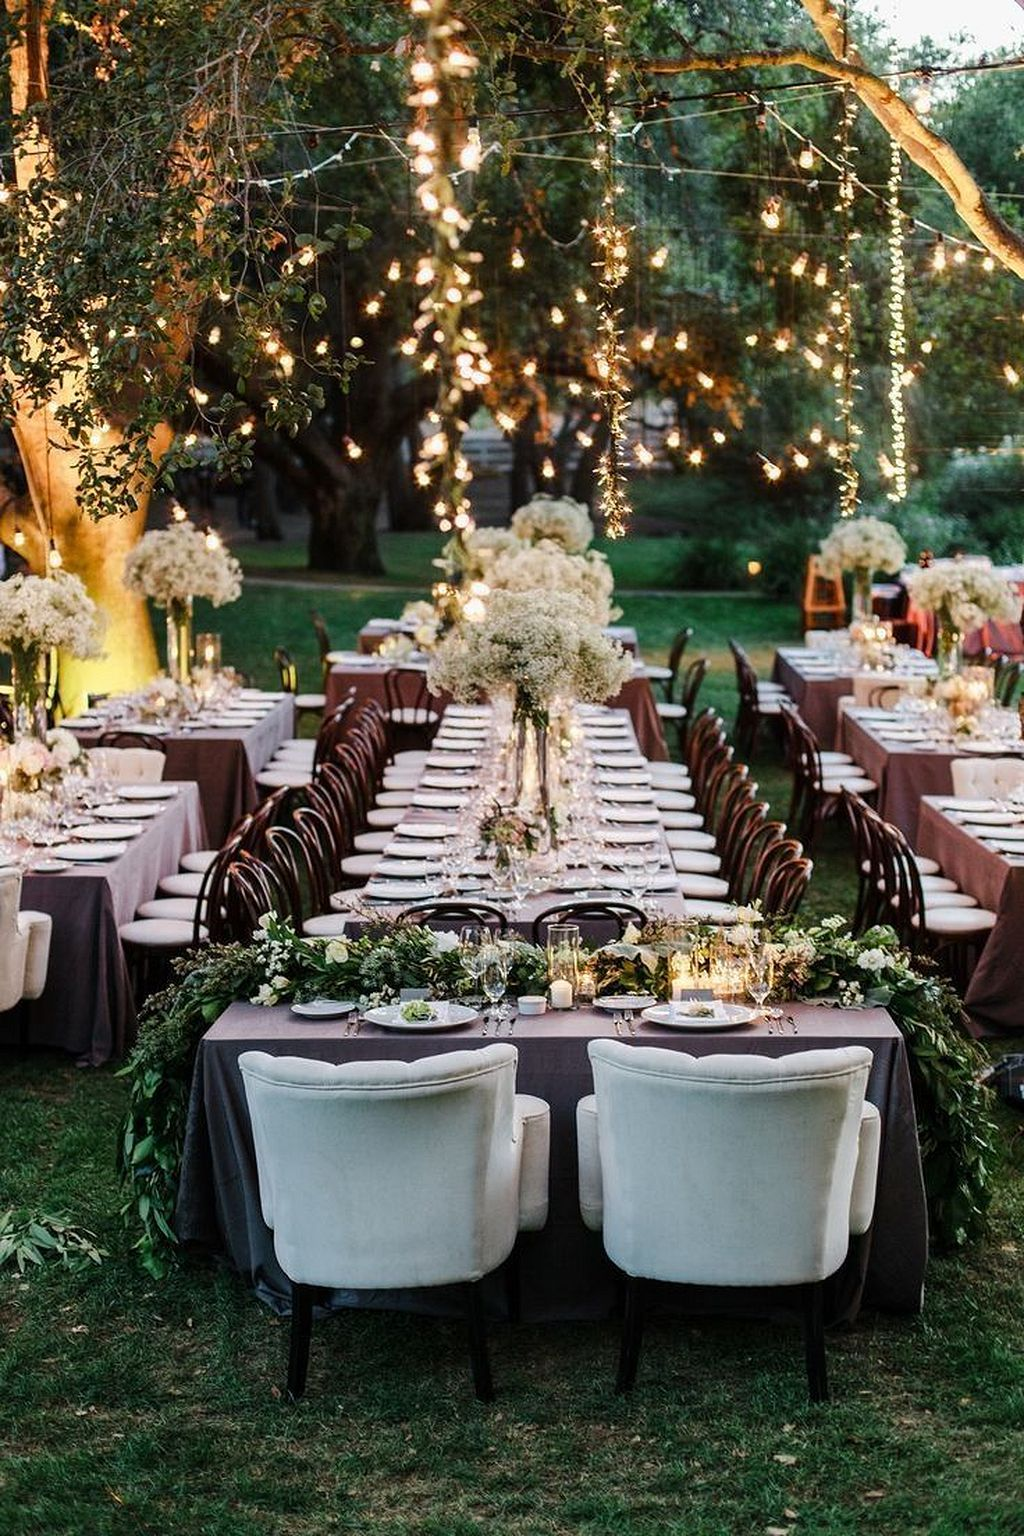 40 Wonderful Backyard Wedding Ideas | Backyard weddings, Backyard ...